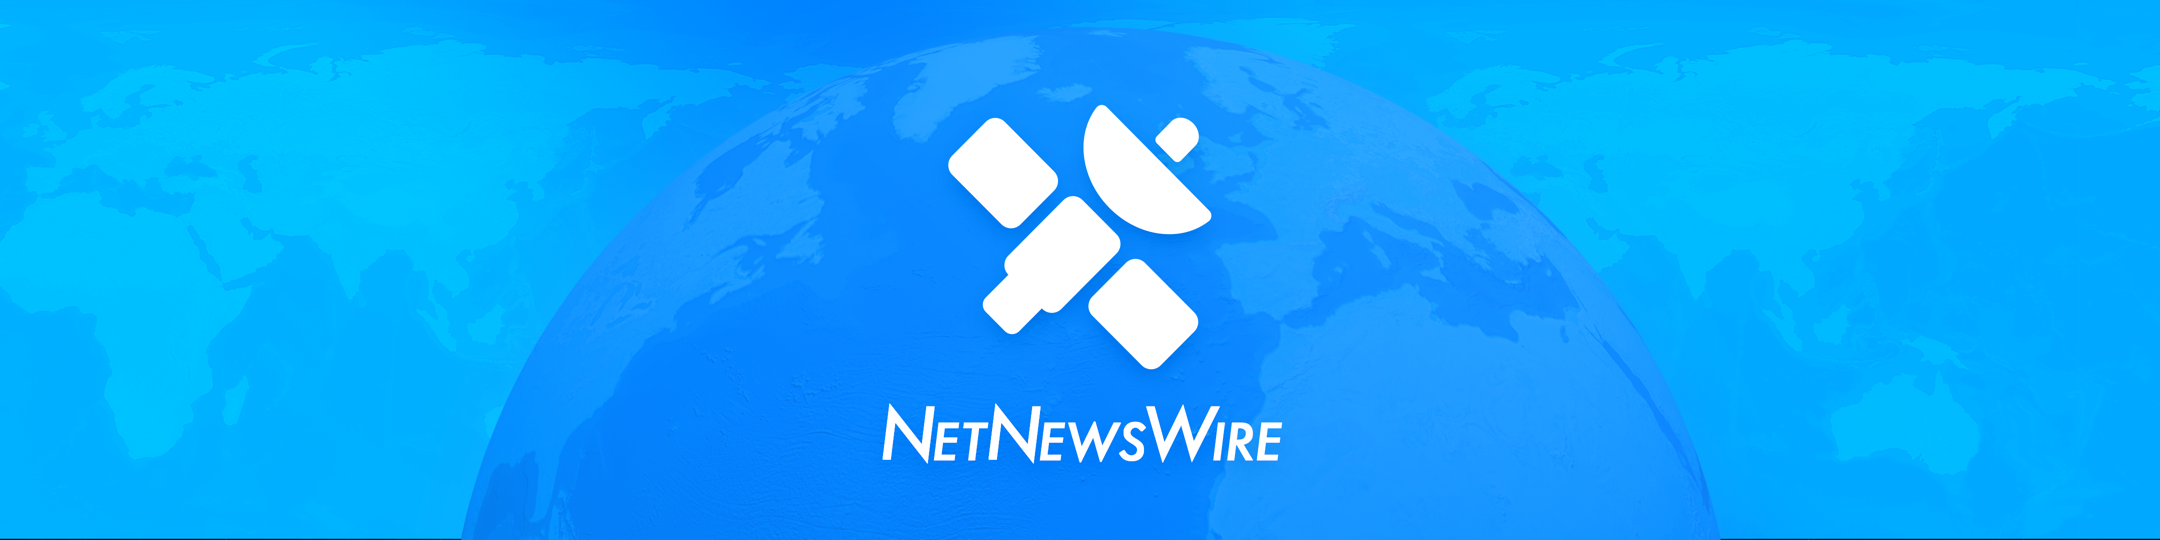 GitHub - Ranchero-Software/NetNewsWire: RSS reader for macOS and iOS.